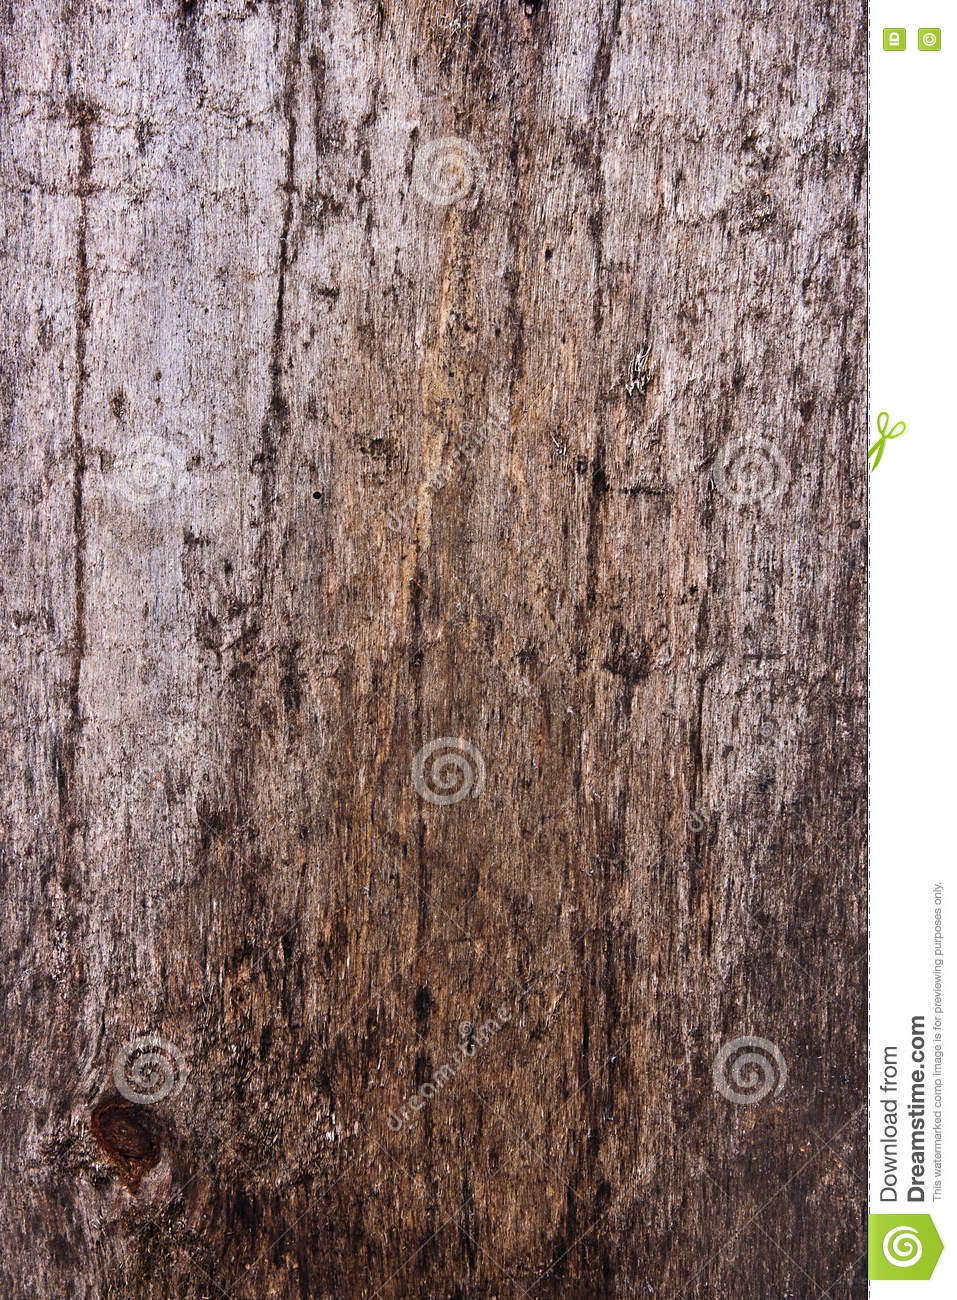 how to stop mould growing on wood